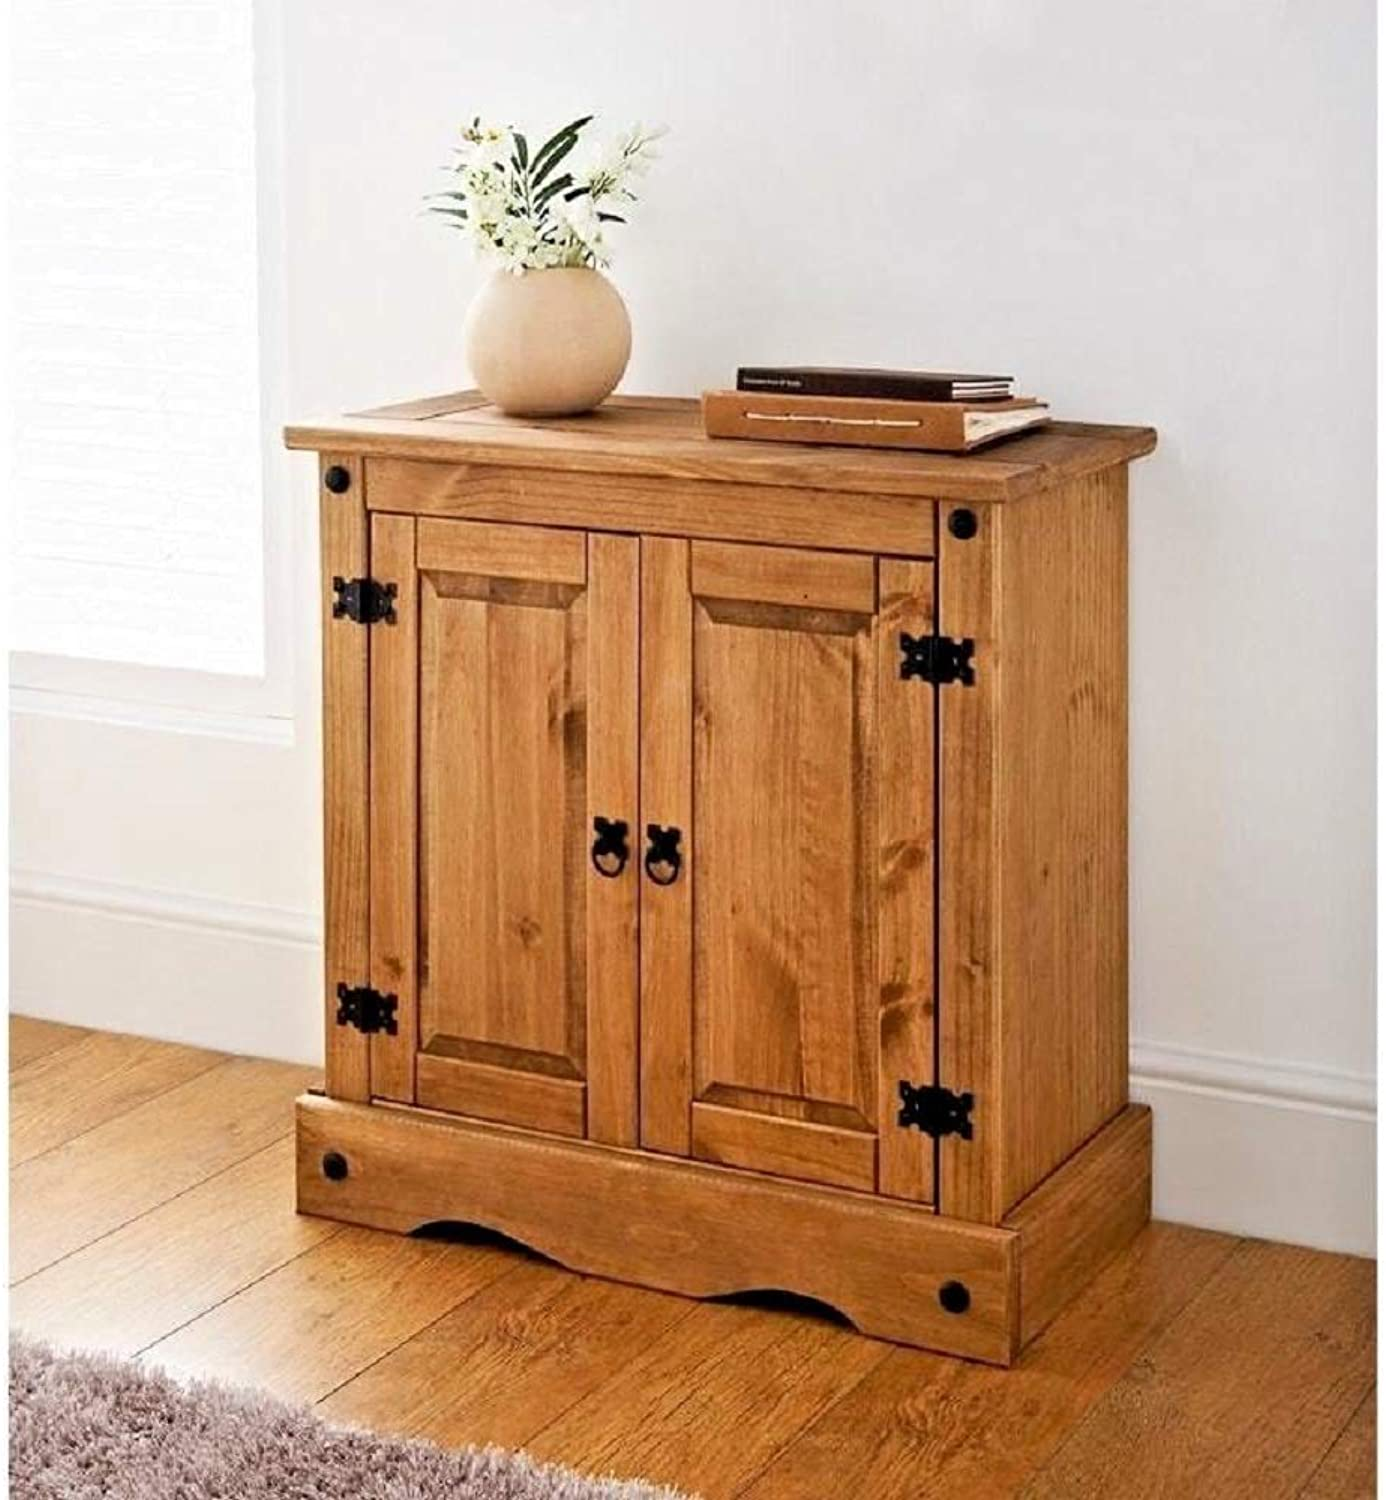 Mews Cgoldna 2 Door Small Sideboard, Mexican Style Waxed, pine, 75cm W x 36cm D x 73cm H